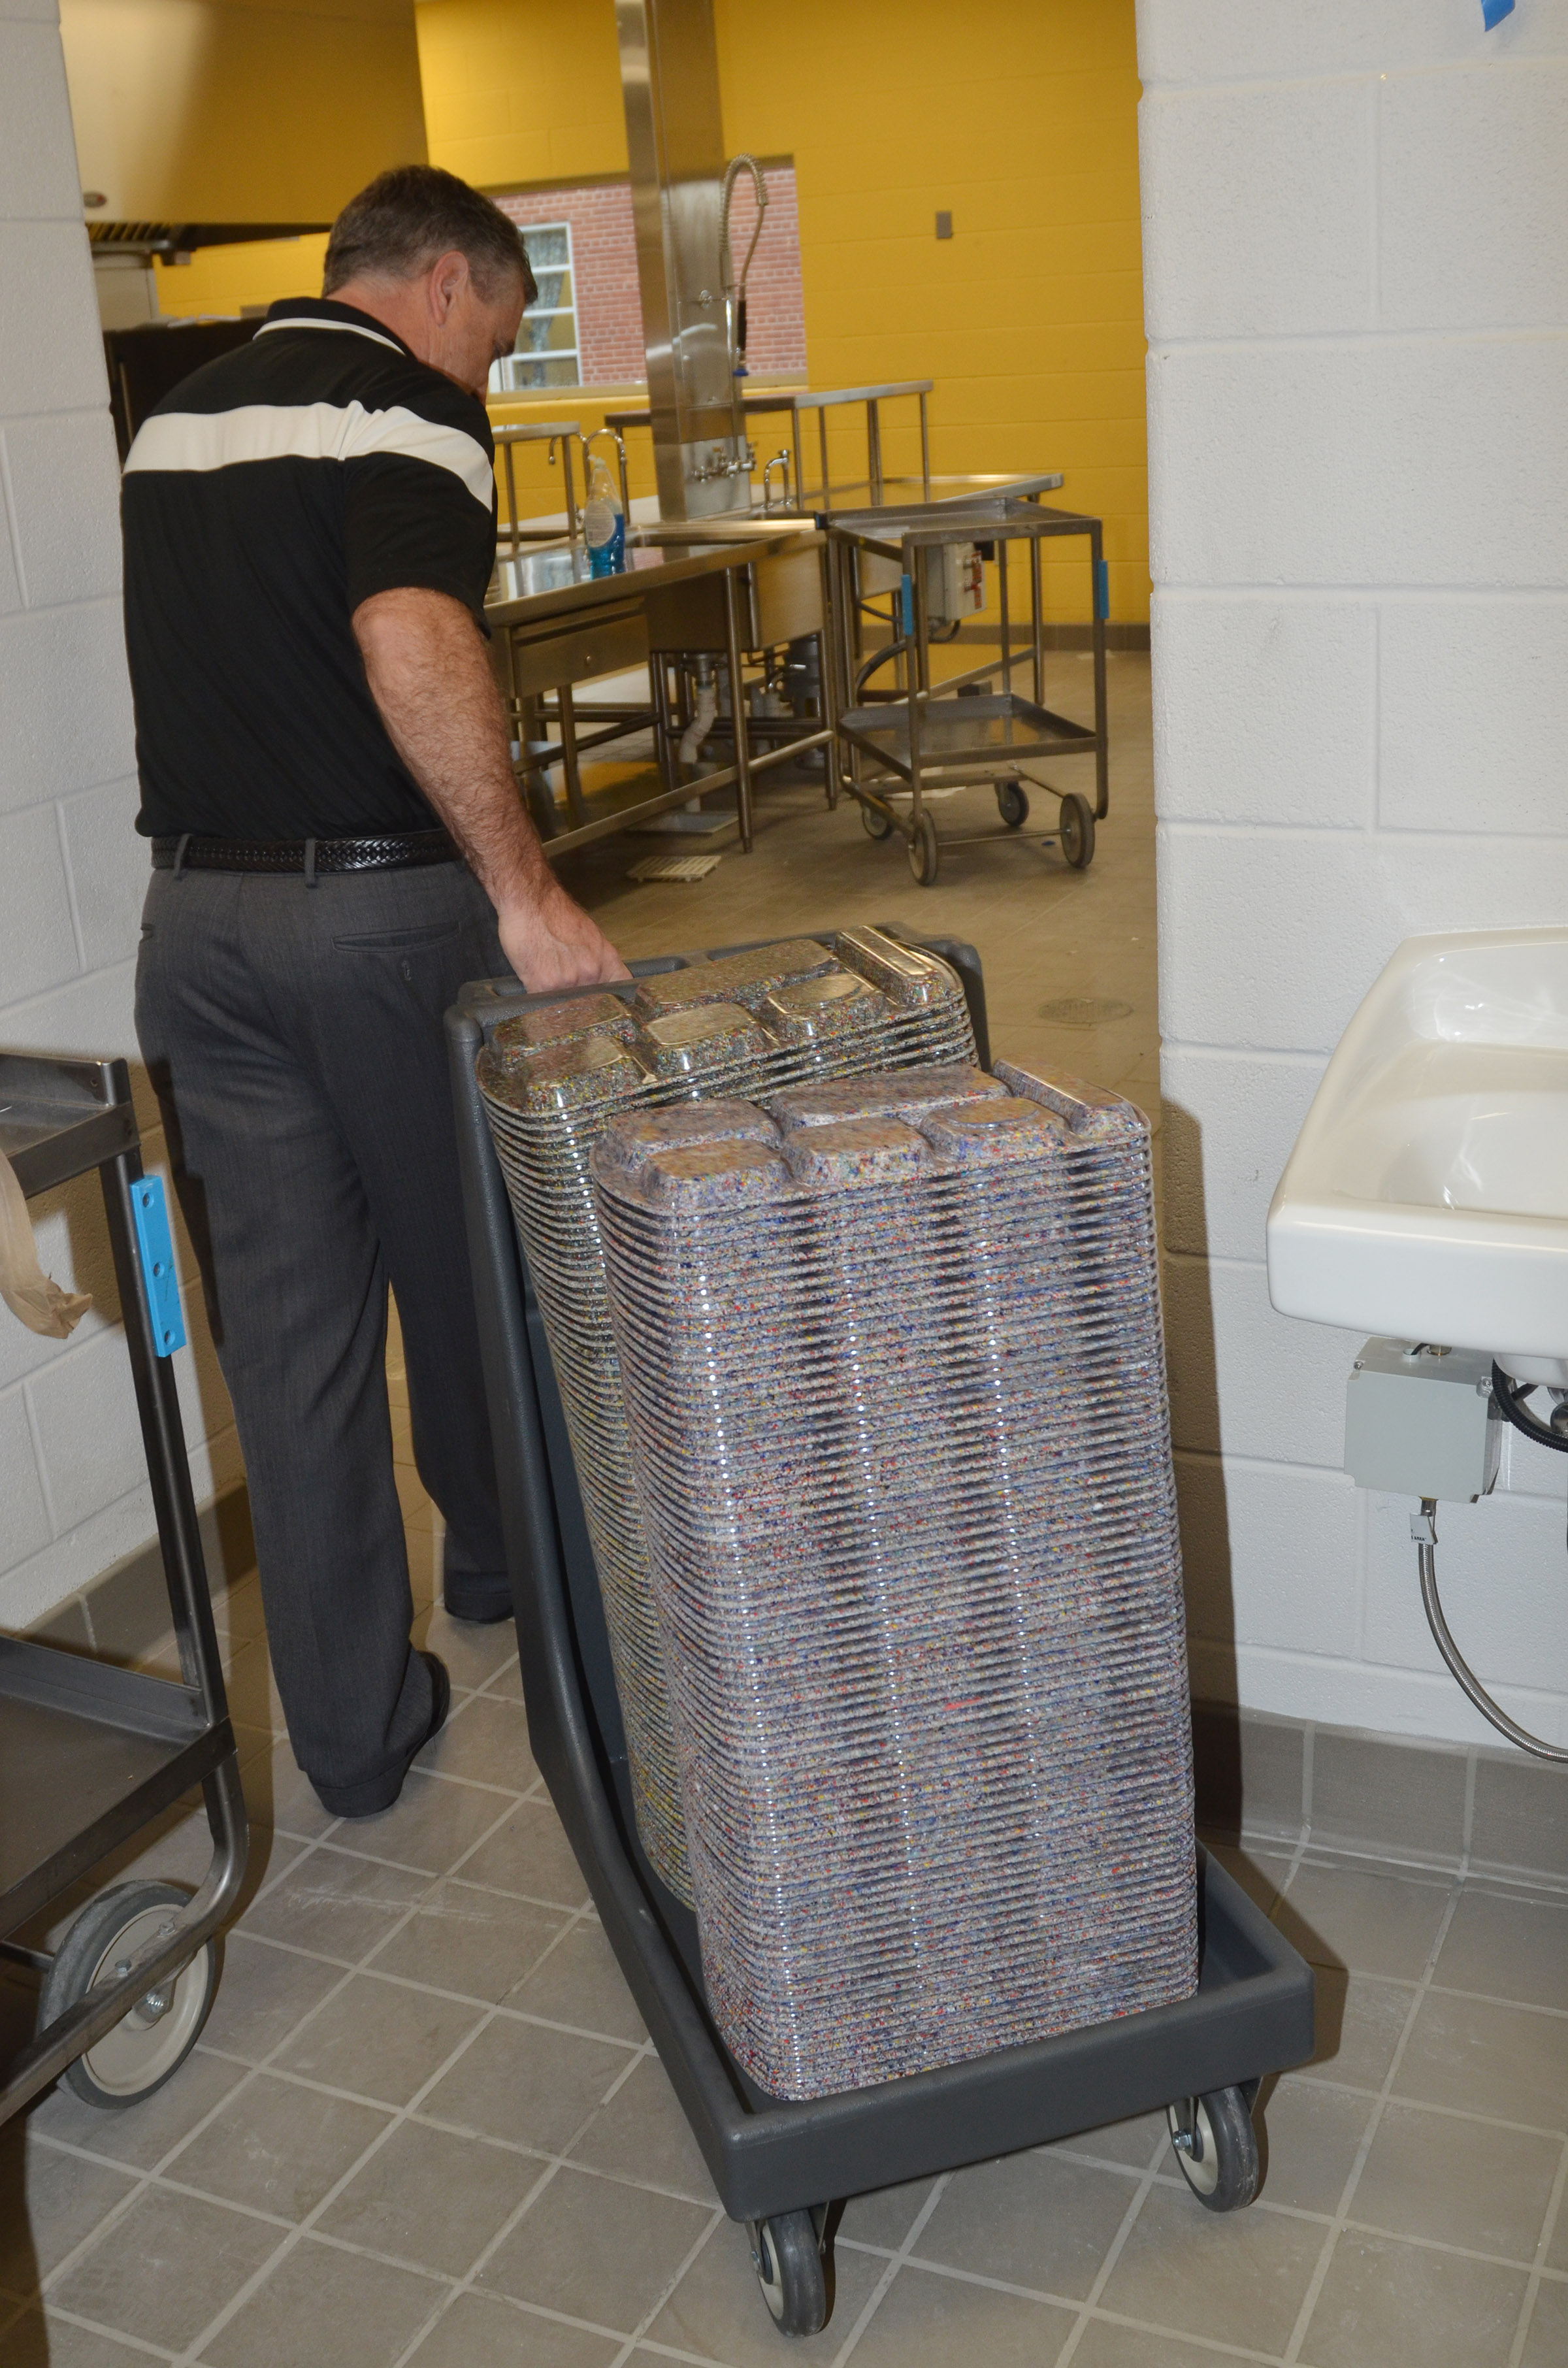 Food Service Director Jeff Richardson loads new lunch trays to be used in the new cafeteria soon.